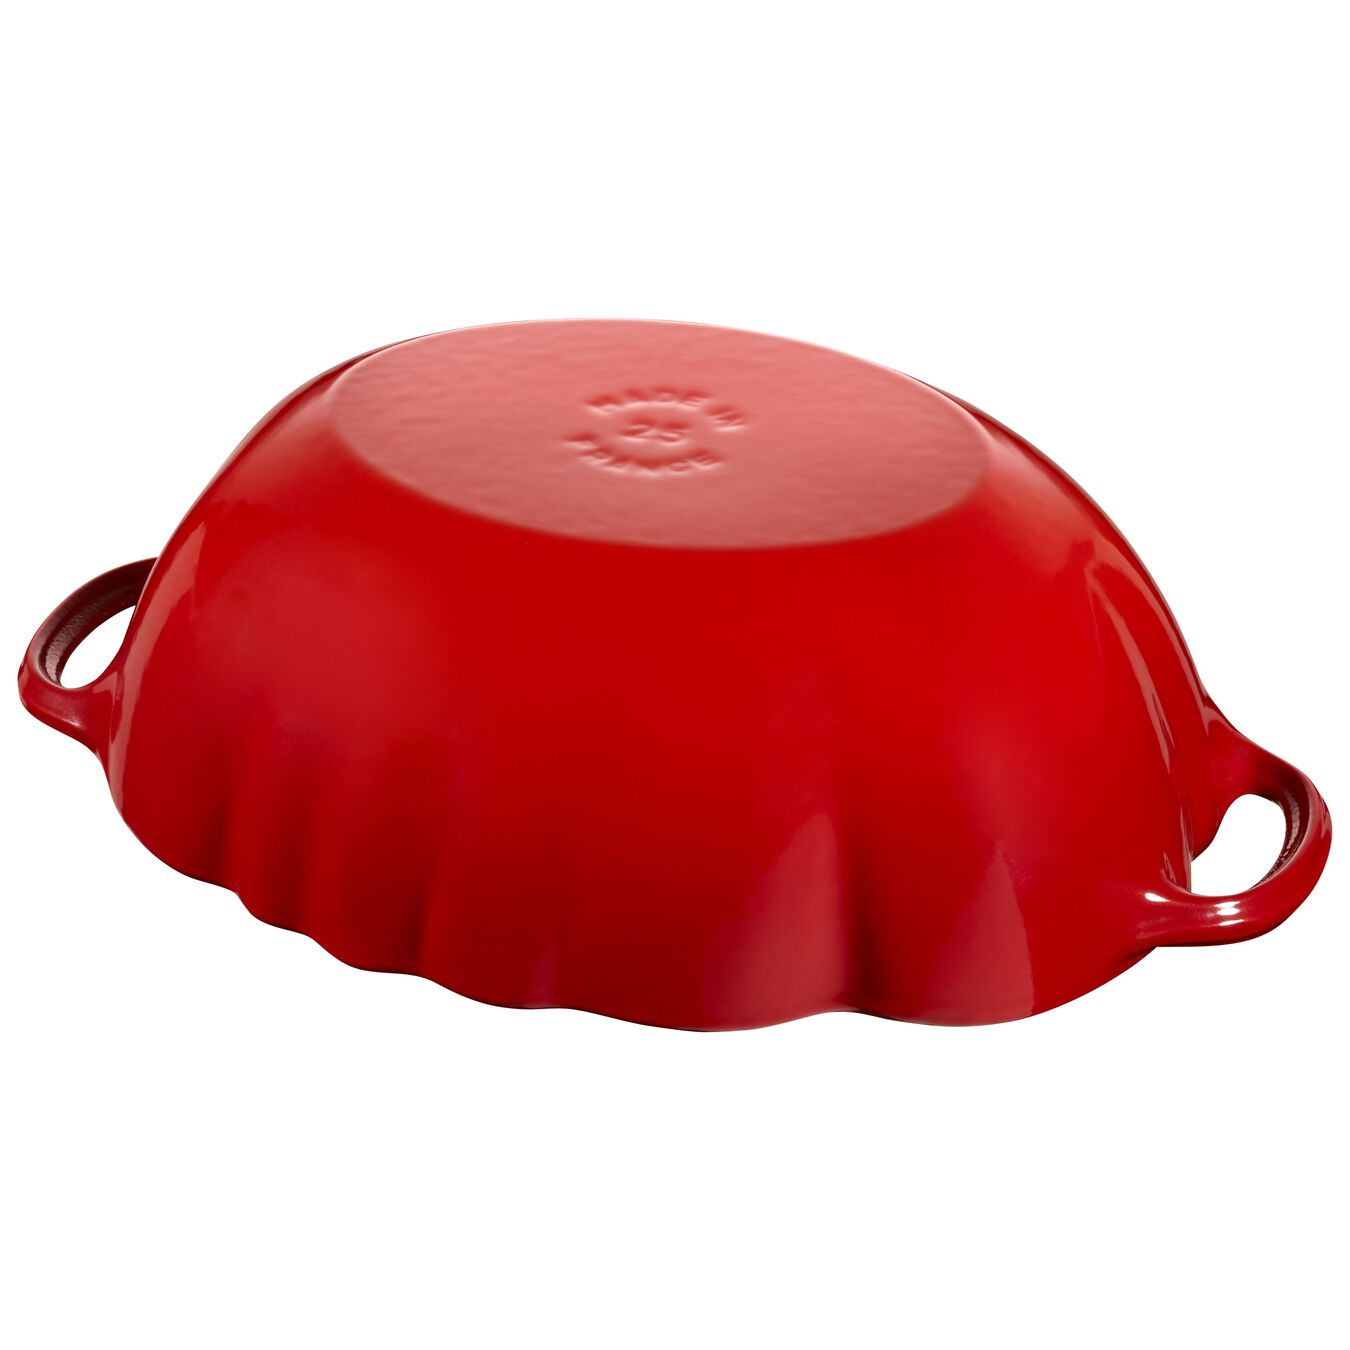 Cocotte 25 cm, Tomate, Kirsch-Rot, Gusseisen,,large 6